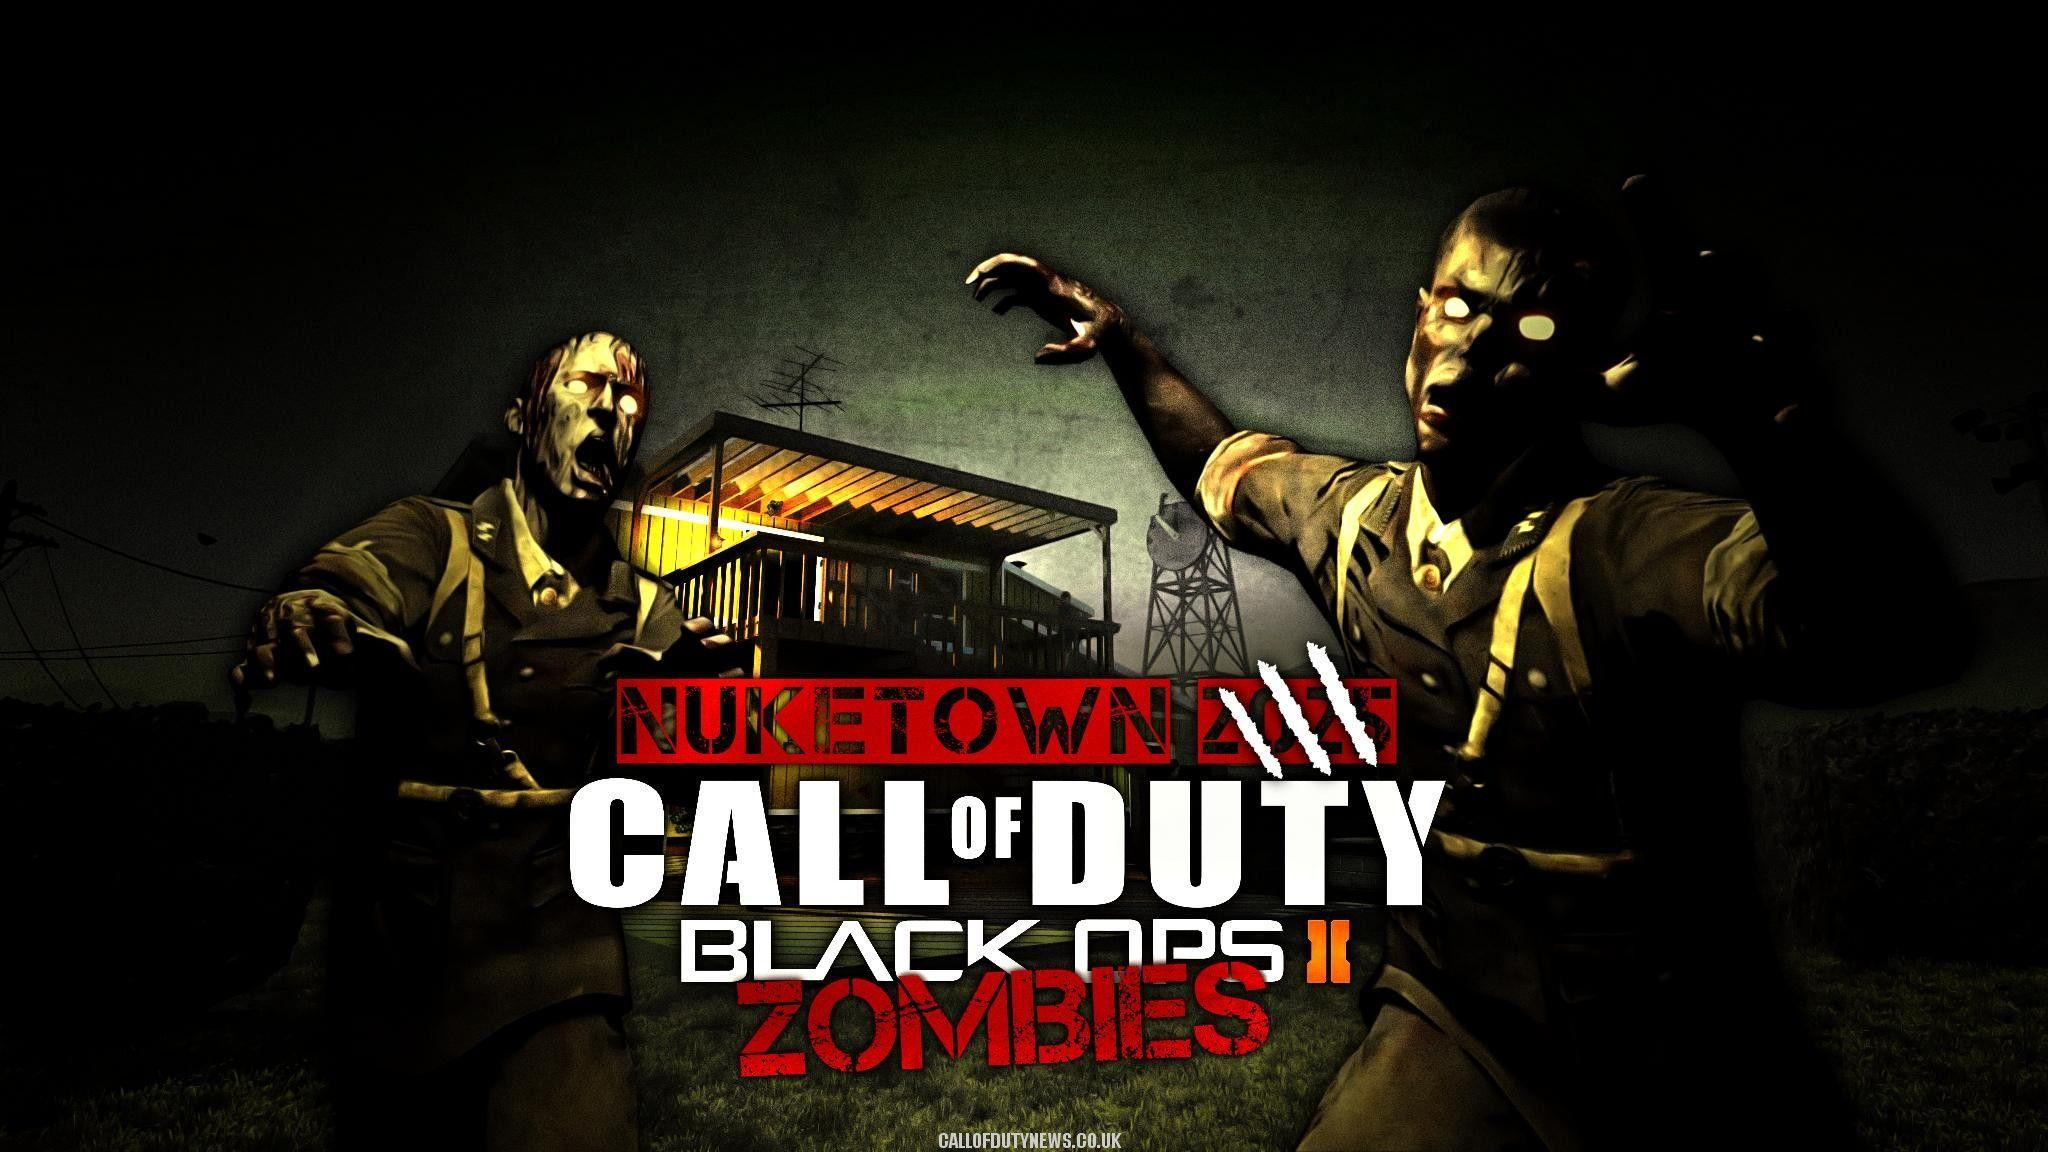 Call Of Duty Bo2 Zombies Wallpapers Wallpaper Cave